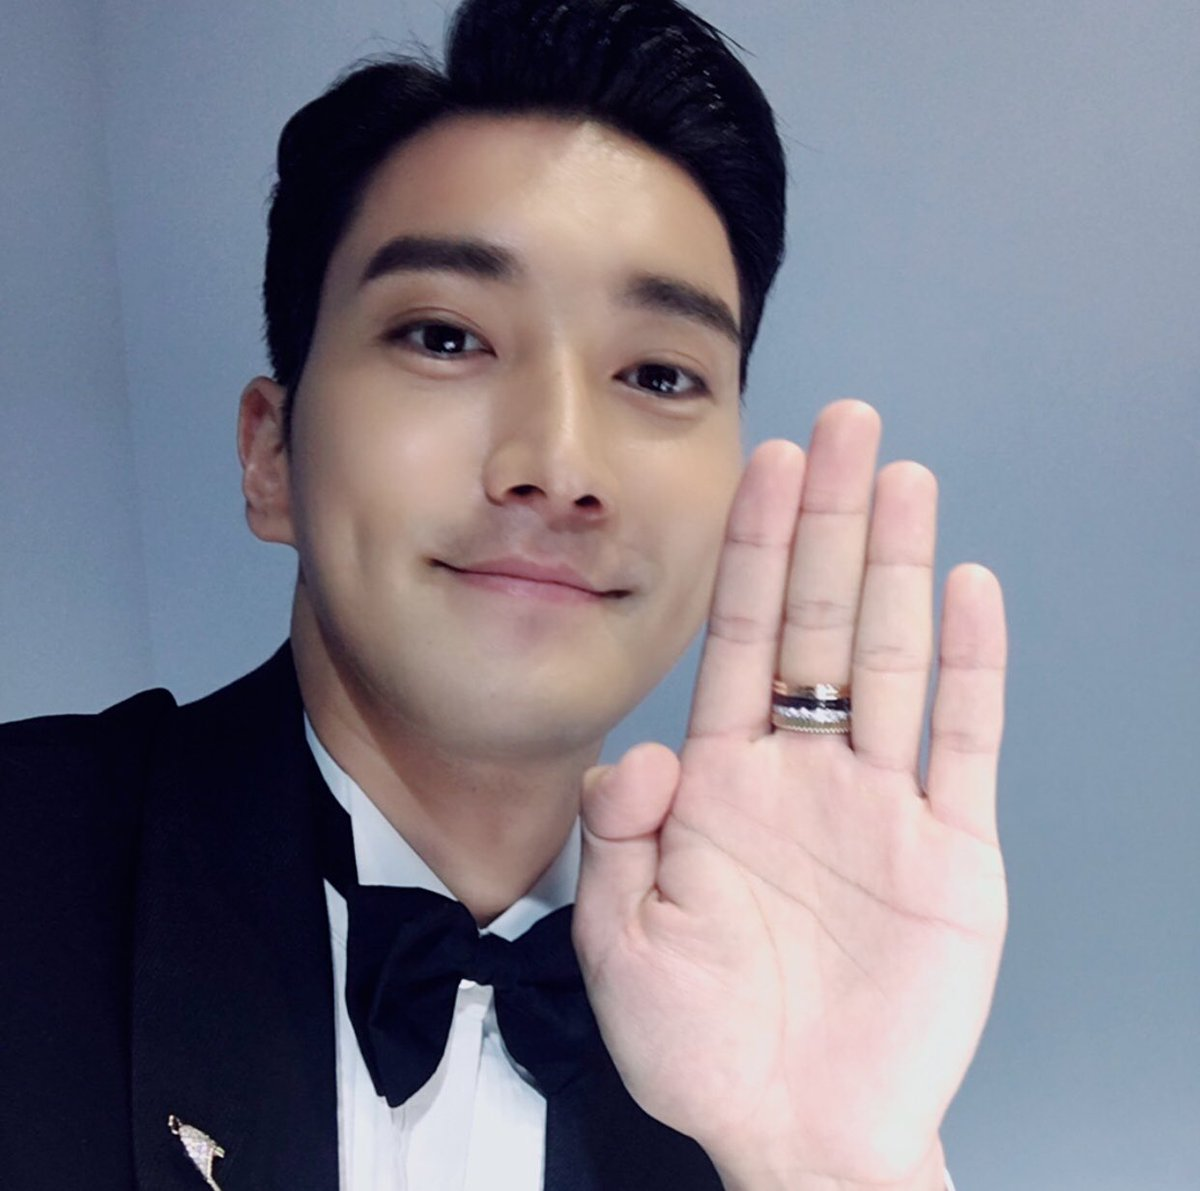 Siwon's selfie at Boucheron Paris Event in Taipei! Credits bellataiwan IG #ChoiSiwon #SiwonChoi #Siwon #최시원 #崔始源 #Boucheron #Siwon407 #始源 #始源欧巴 @siwonchoi